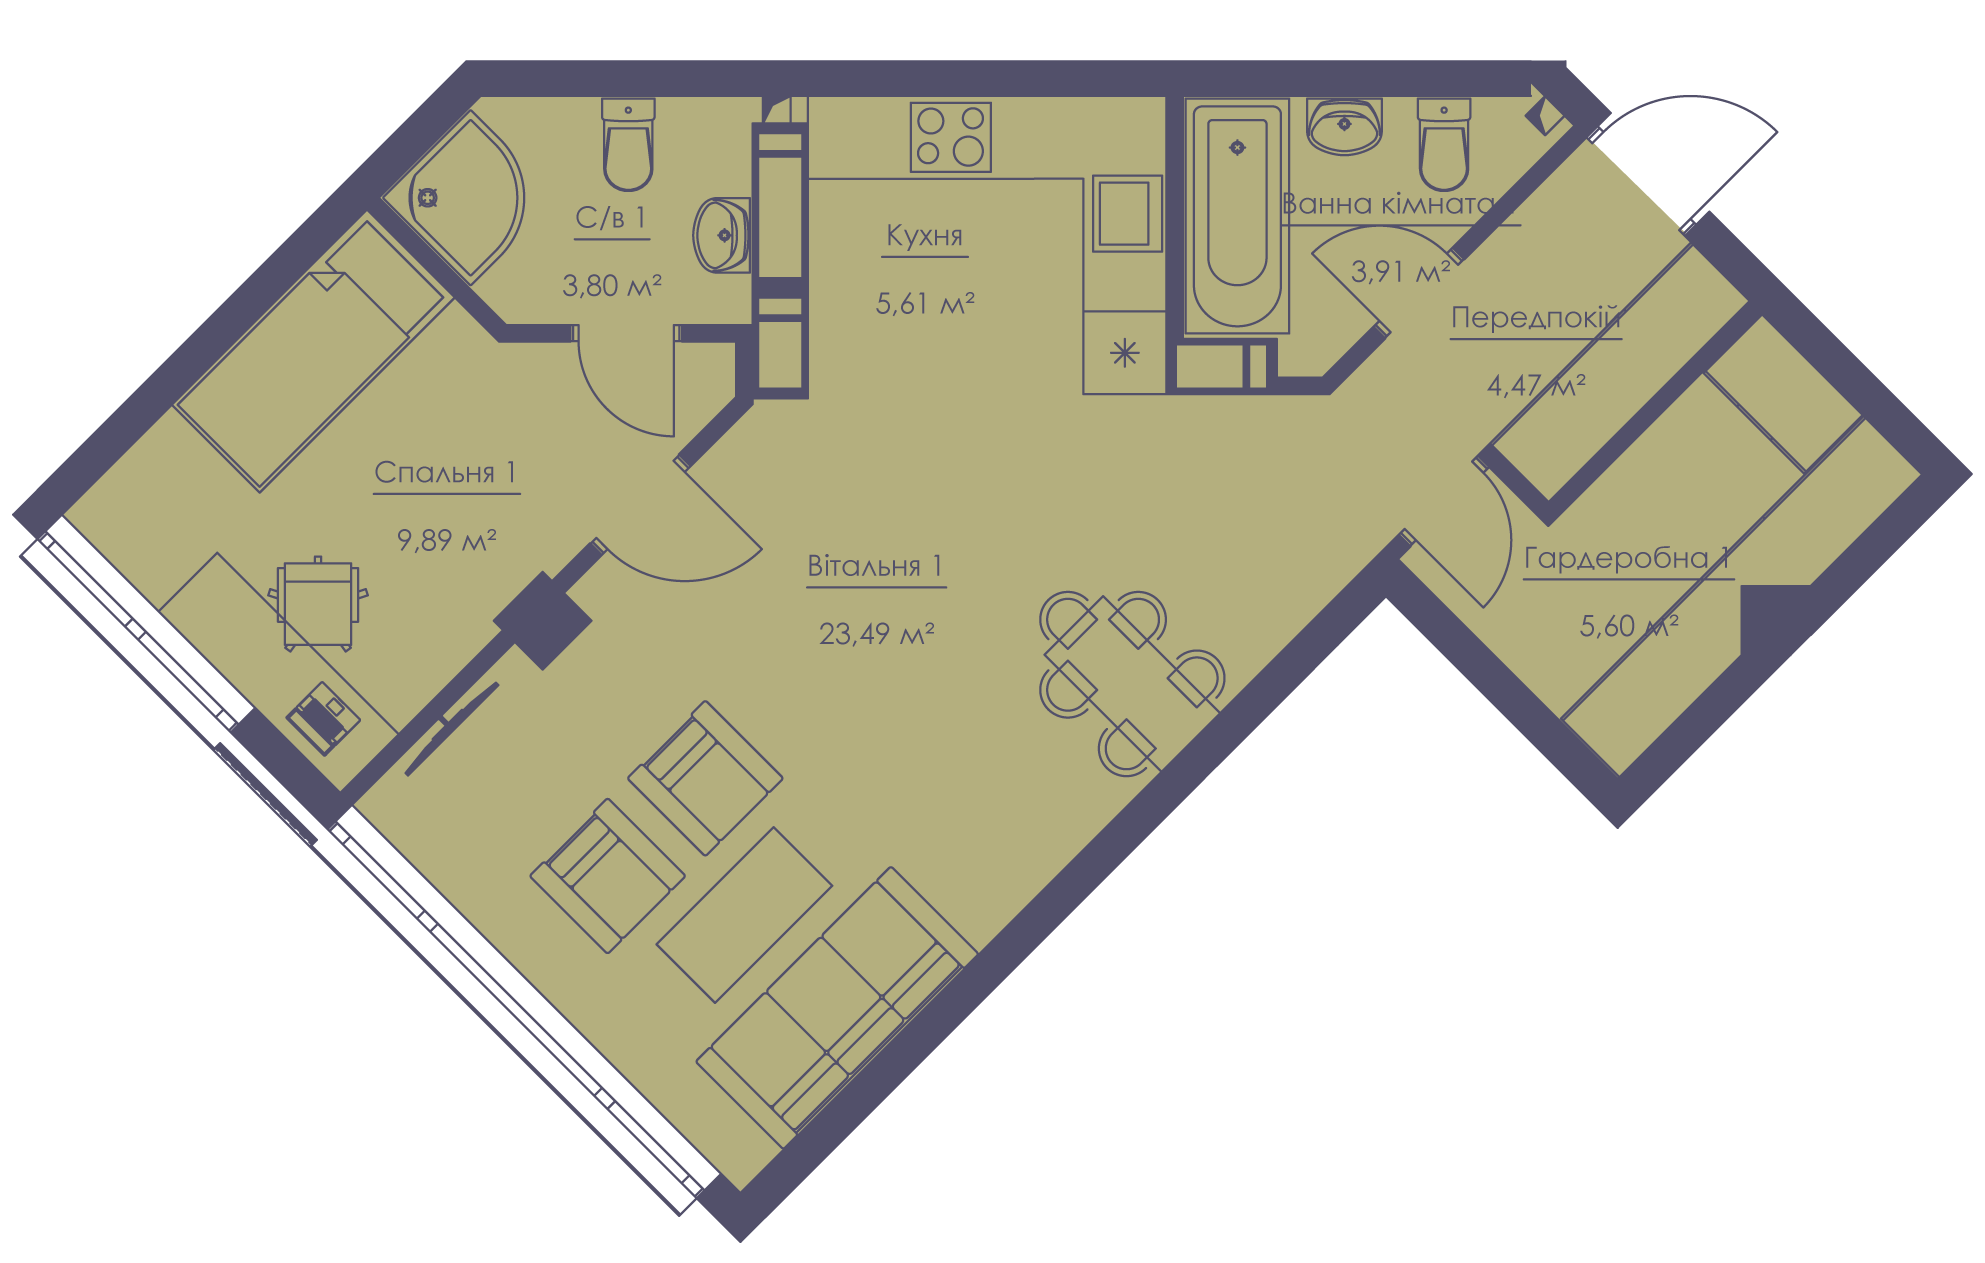 Apartment layout KV_50_2b_1_1_4-1